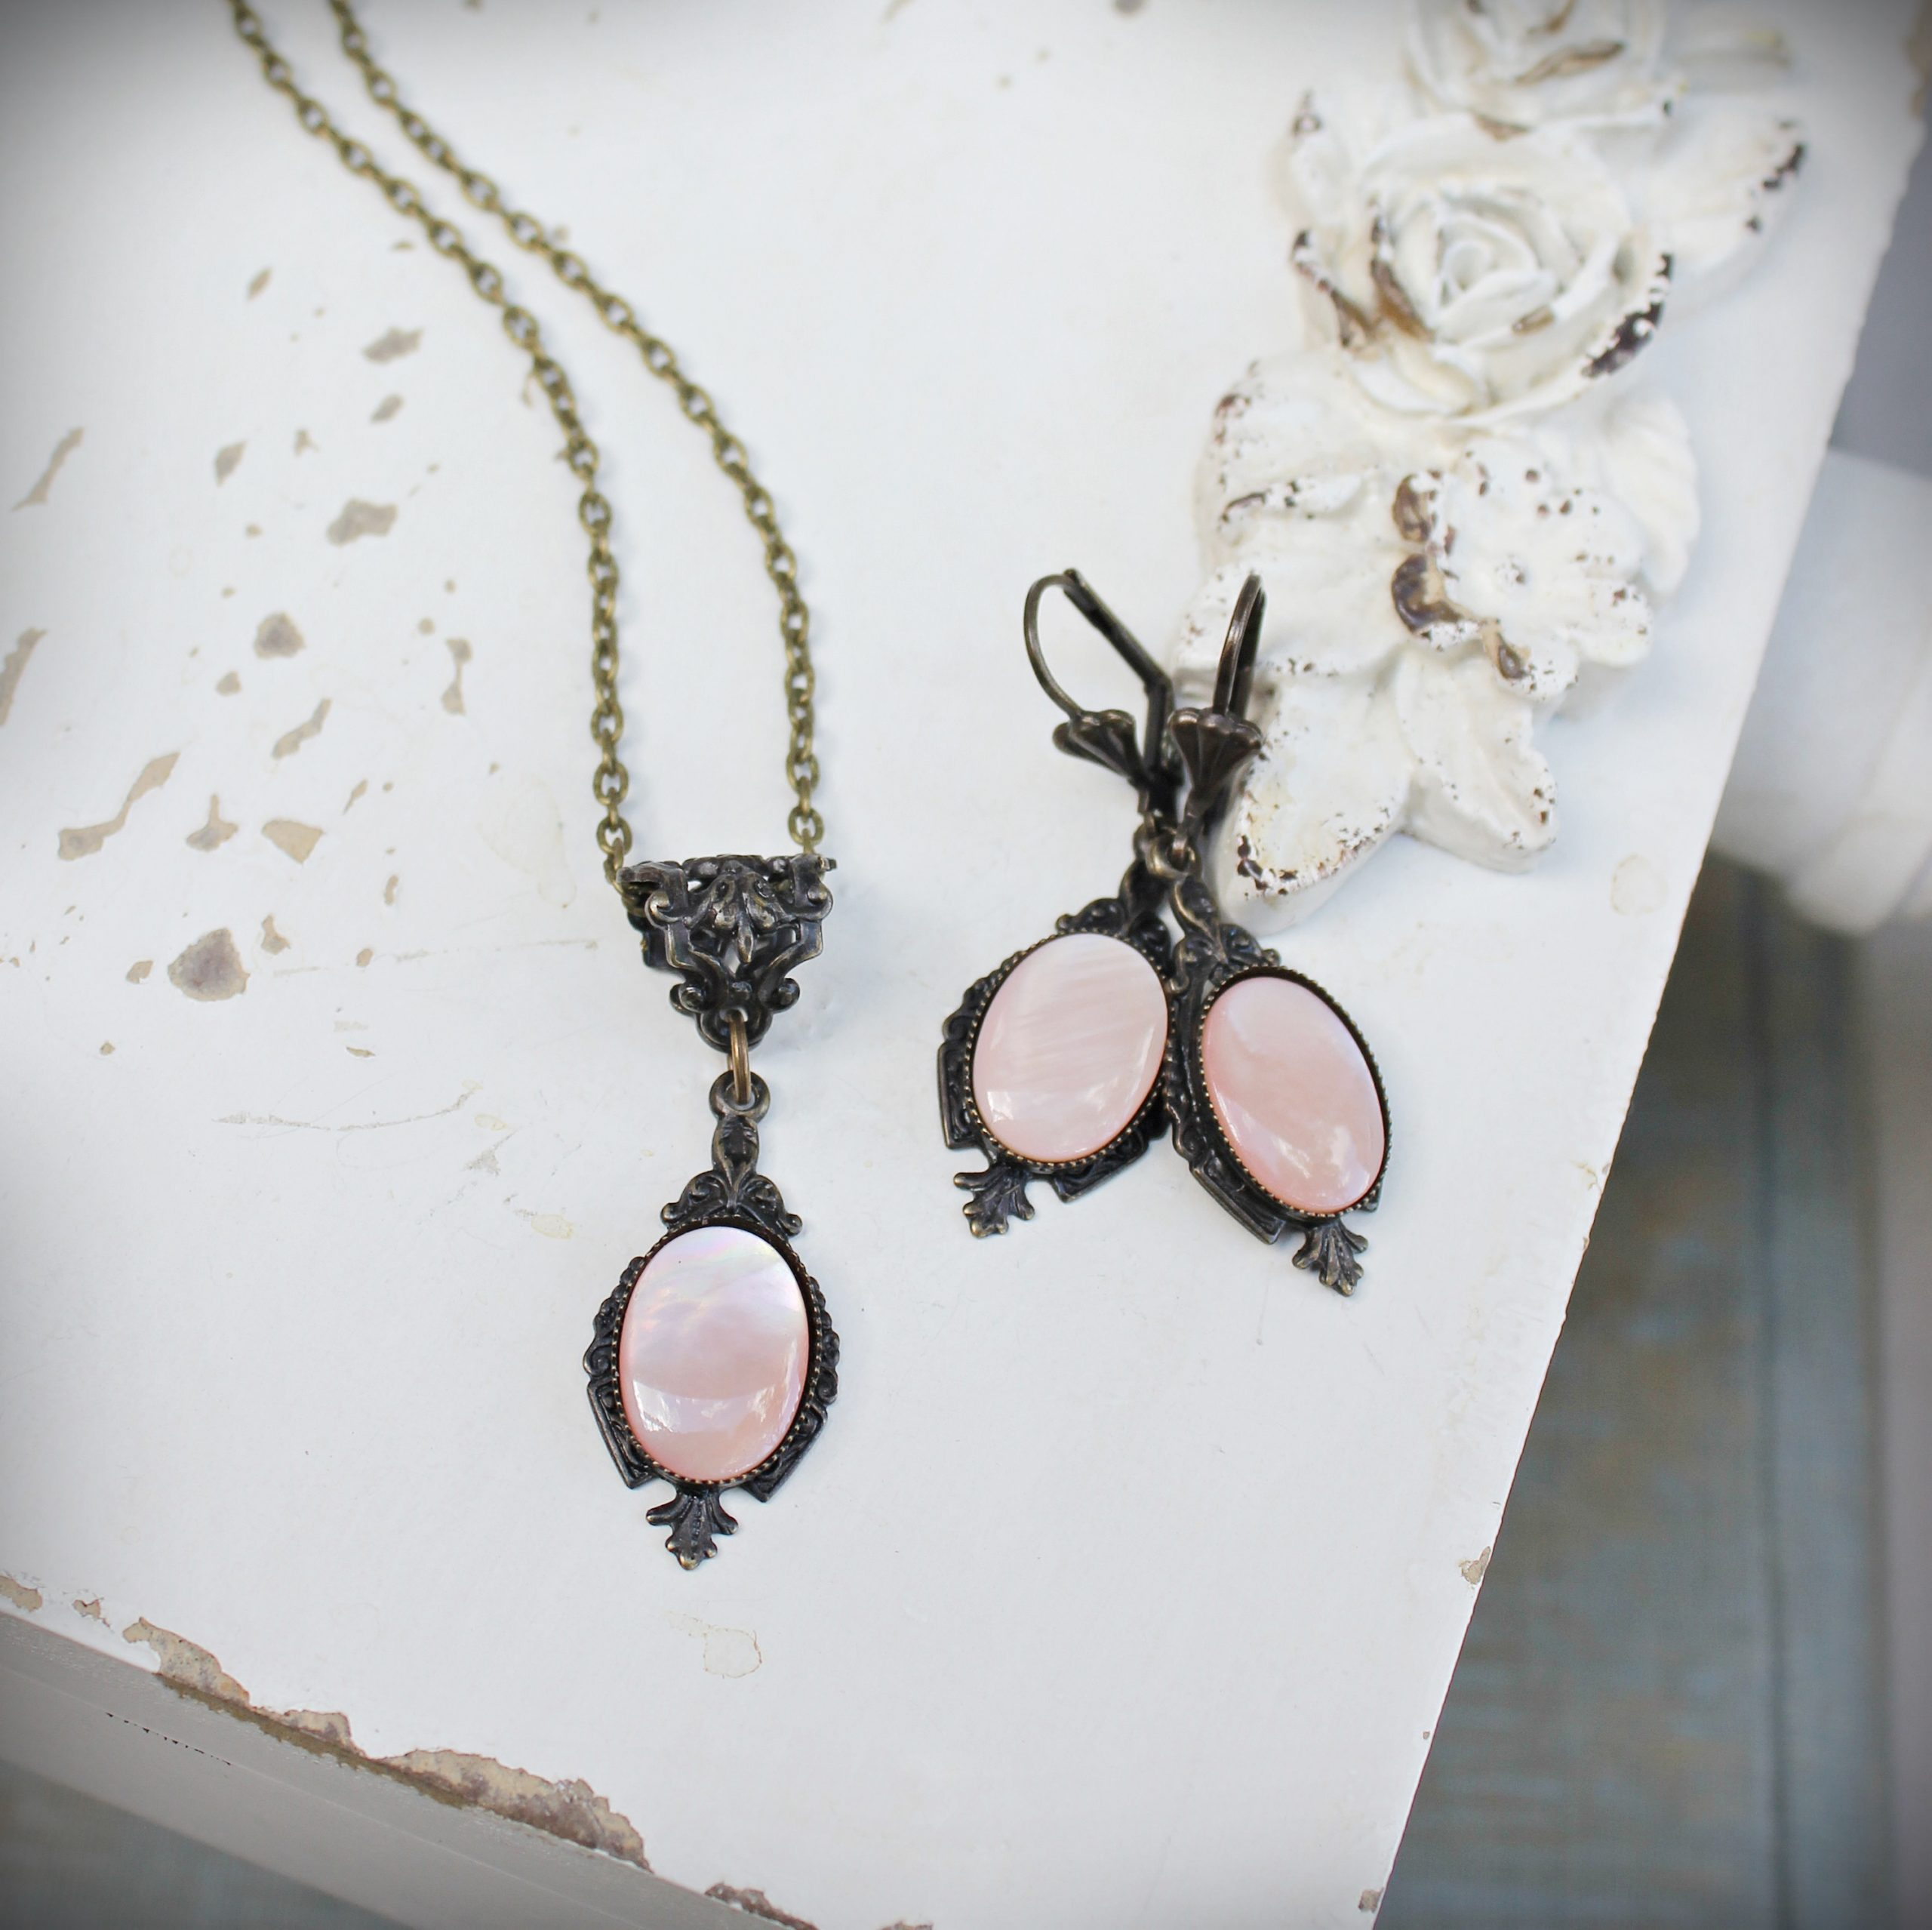 pink shell necklace earrings vintage